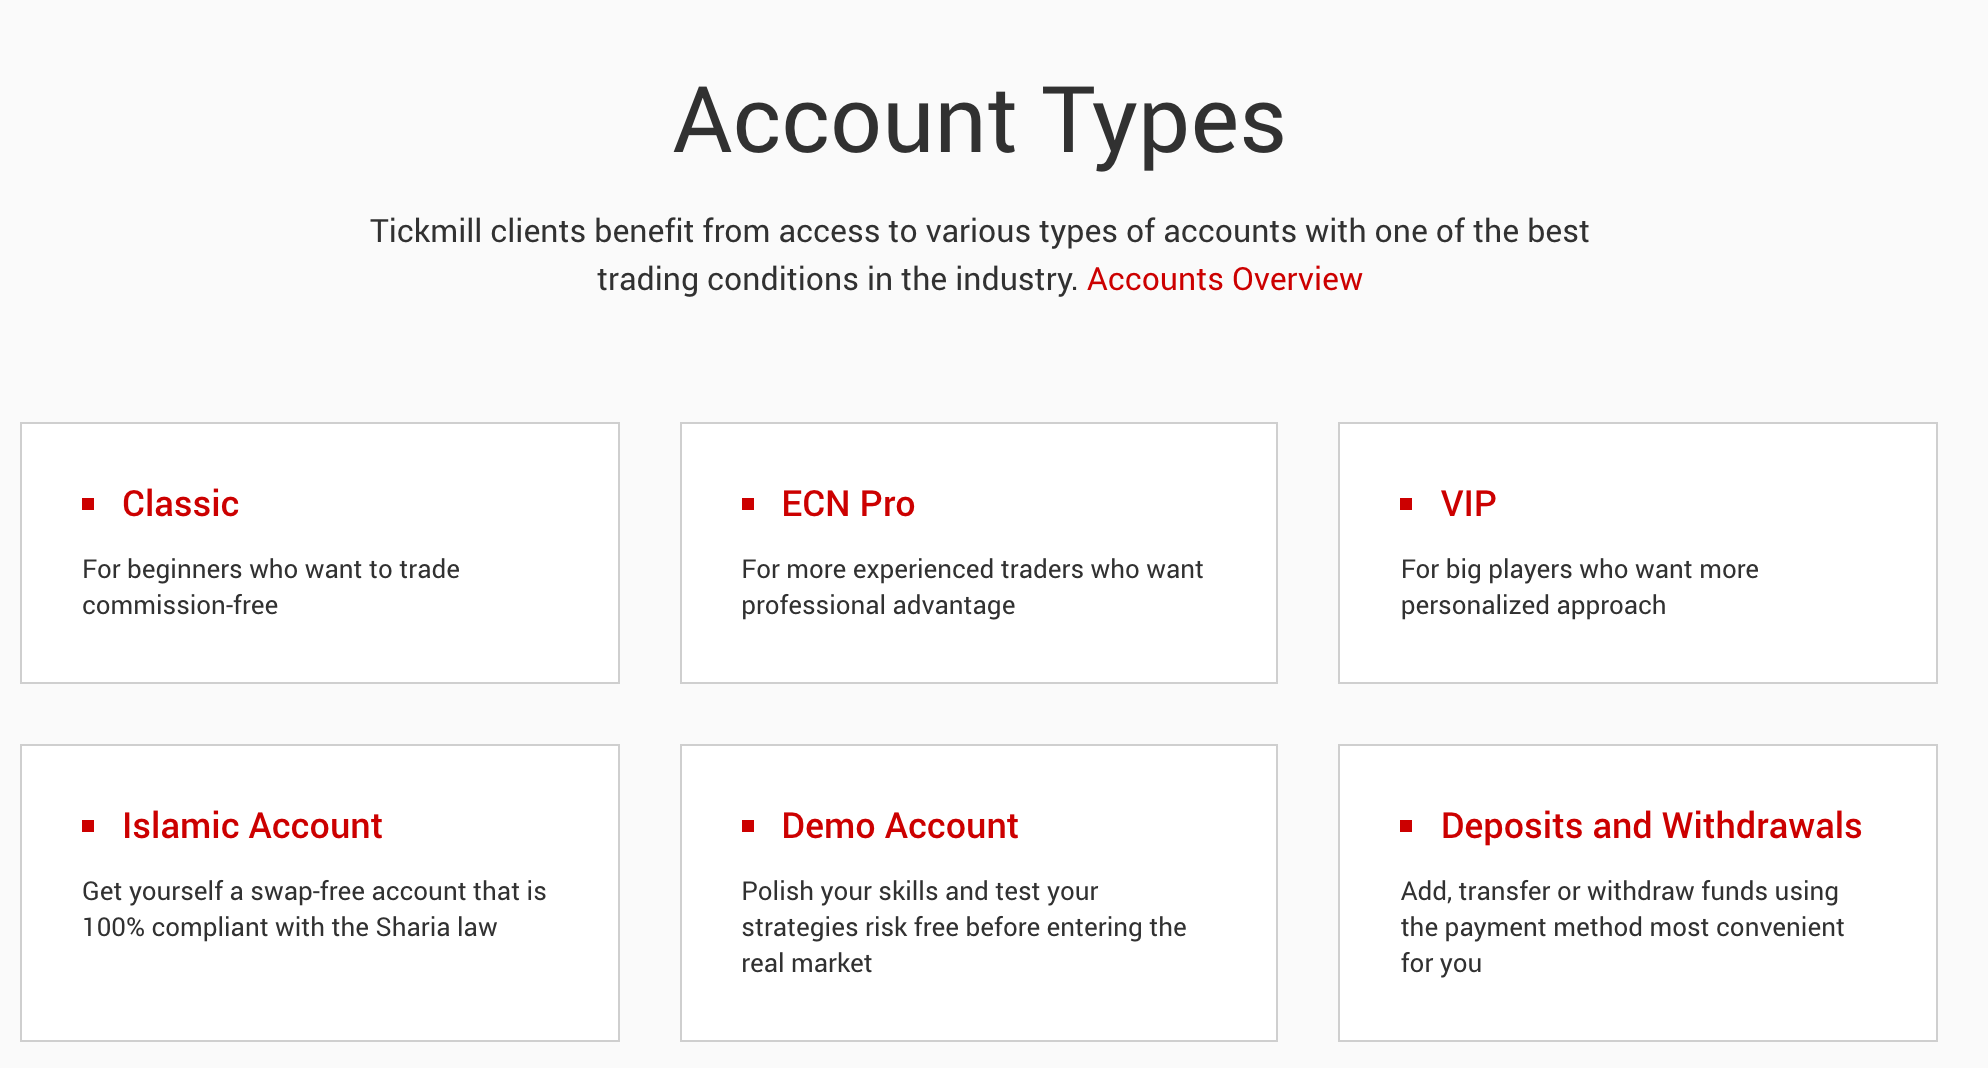 Tickmill.com Review - Good reviews prompted us to Open an ECN Pro Account with Tickmill.com